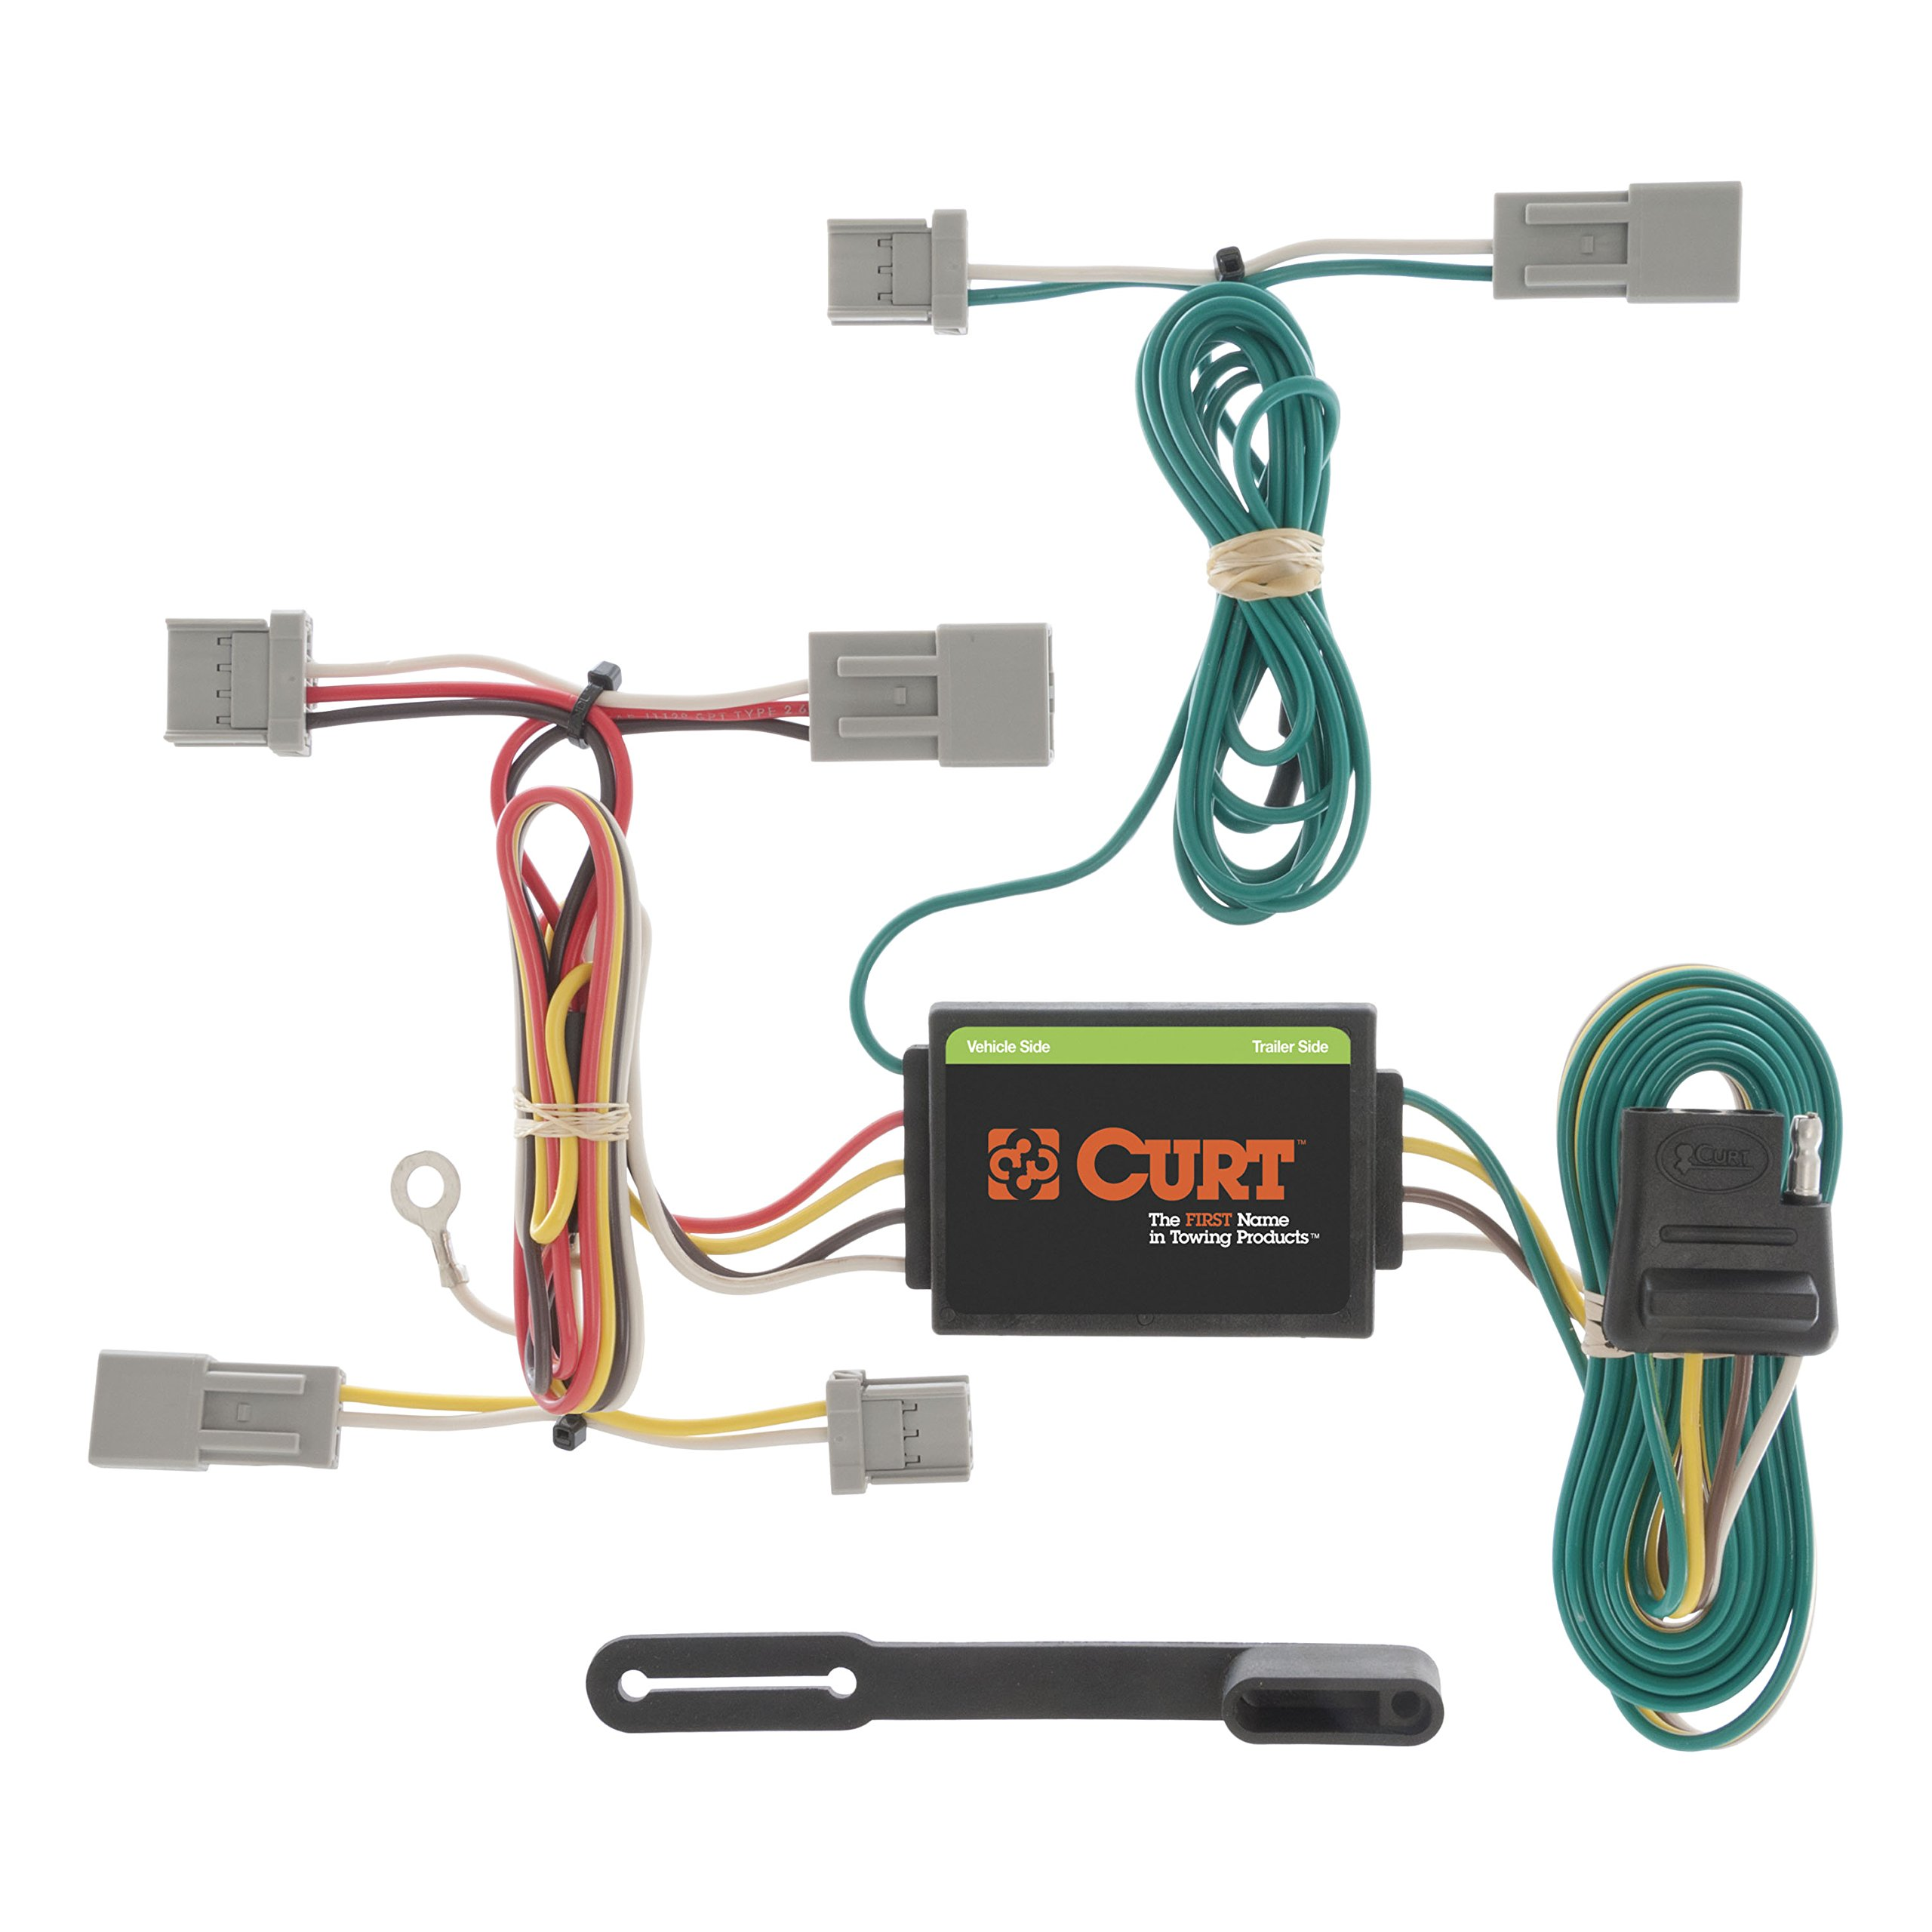 CURT 56011 Vehicle-Side Custom 4-Pin Trailer Wiring Harness for Select Honda Accord, Civic, Fit, Mazda 3, CX 5, Mitsubishi Galant by Curt Manufacturing